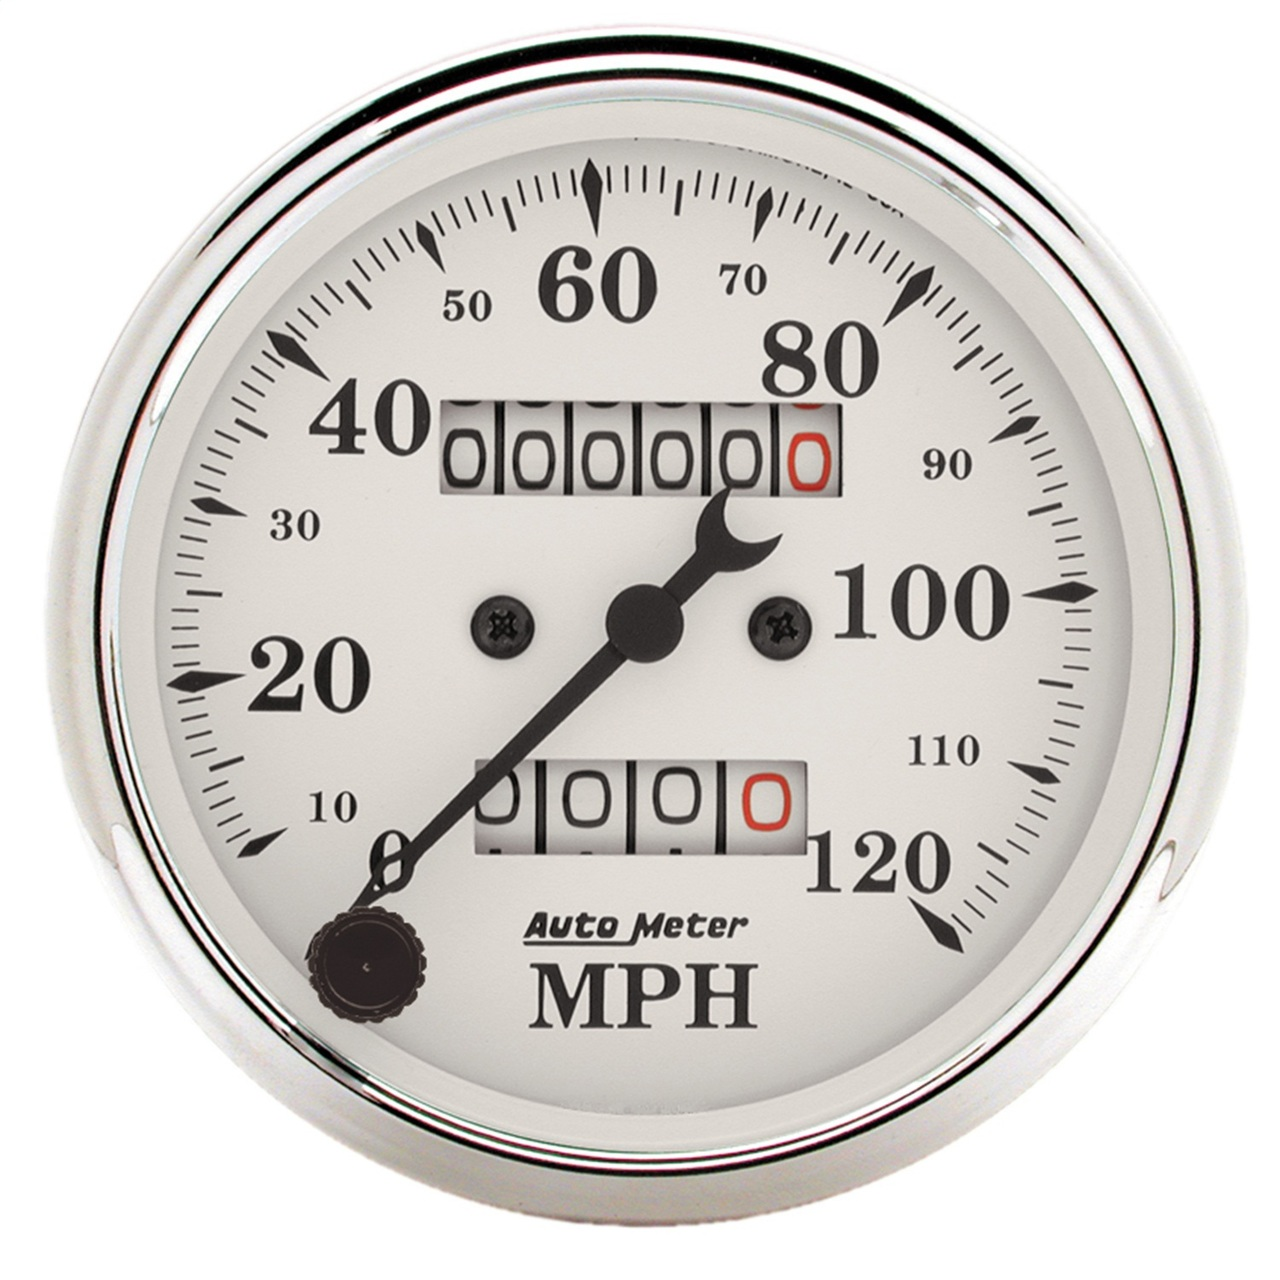 Auto Meter 5153 Pro-Comp 3-3//8 160 mph In-Dash Mechanical Speedometer with Trip